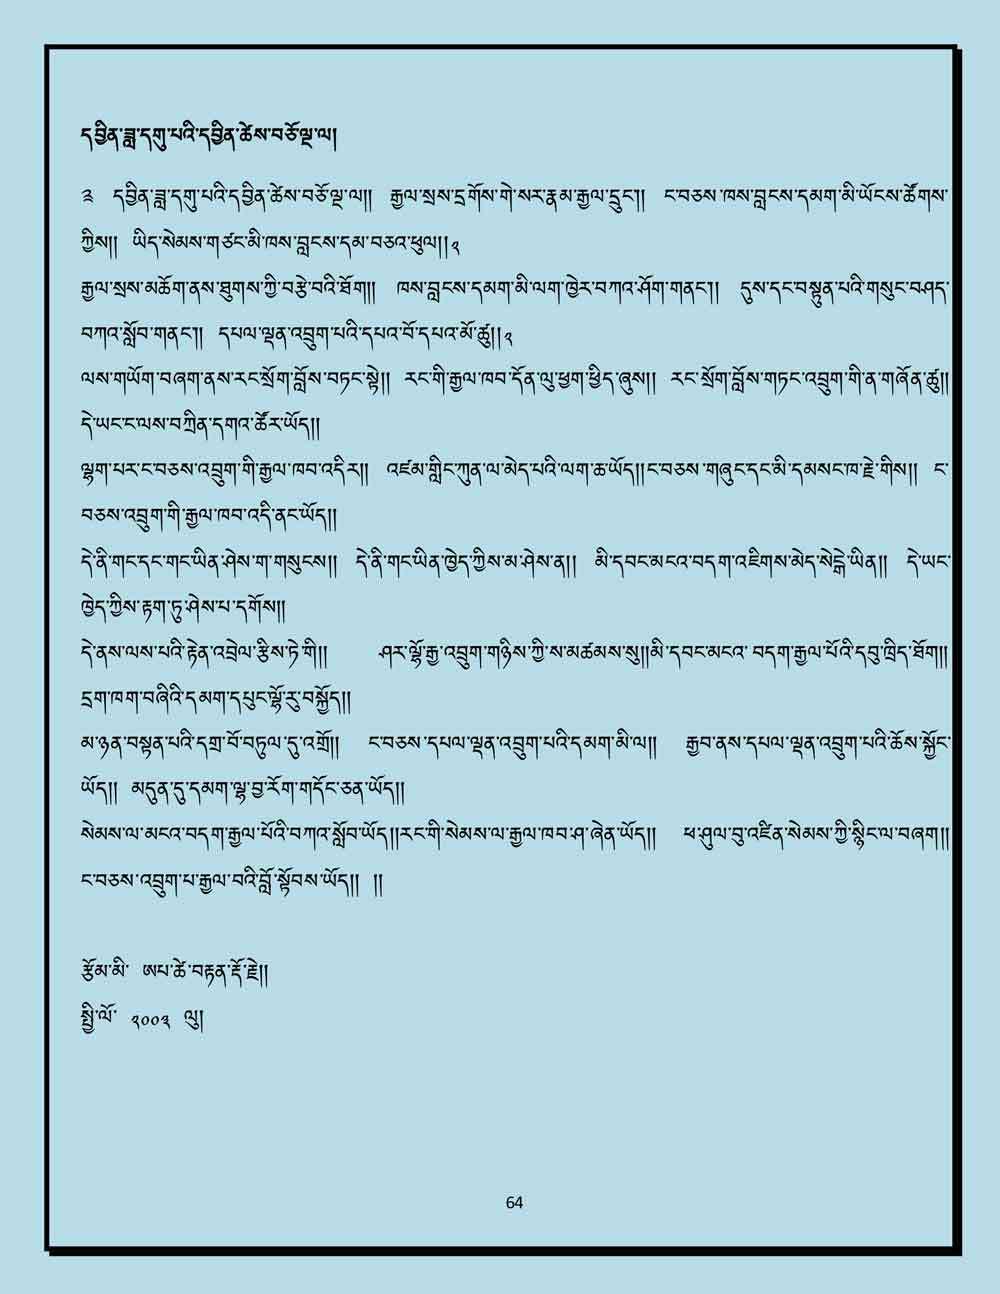 Ap-Tseten-Lyrics-64.jpg